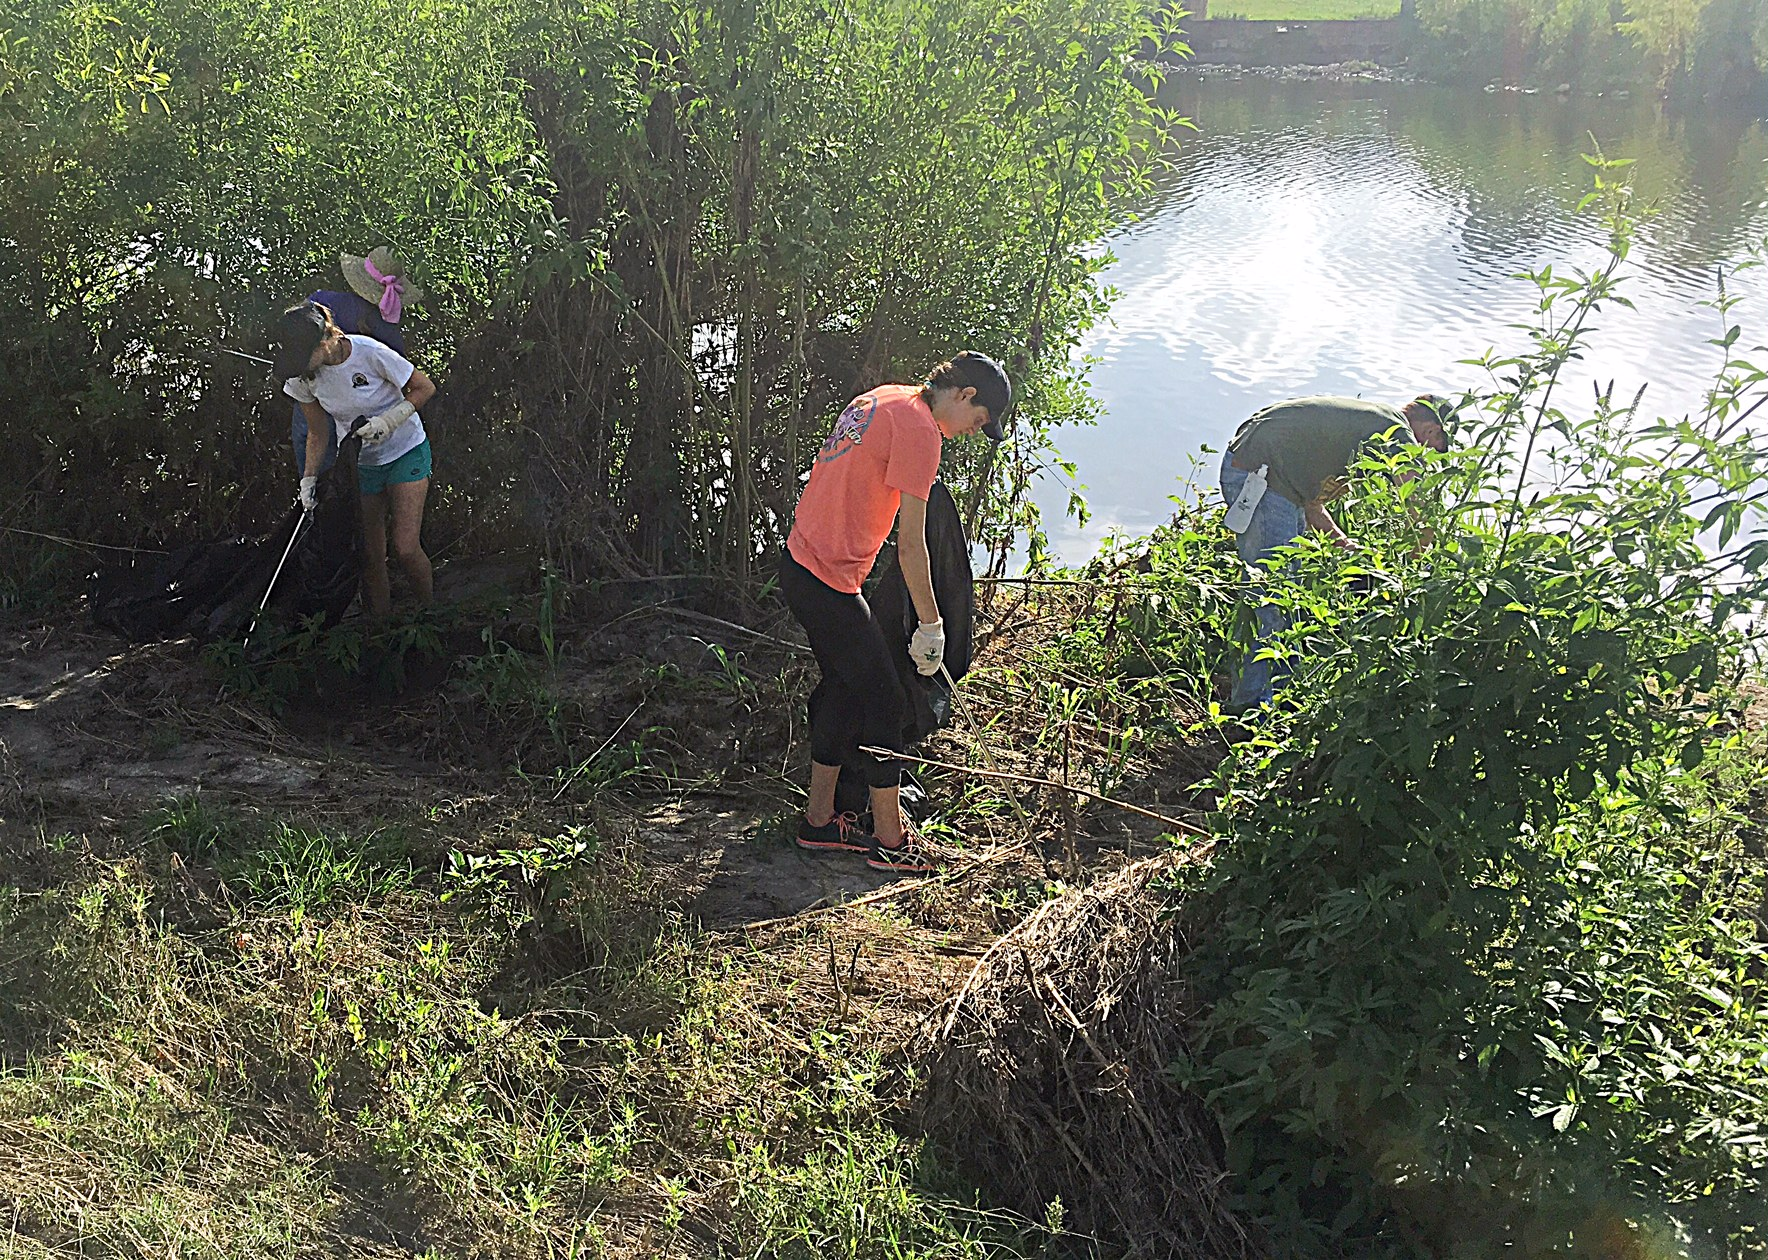 River Warrior volunteers taking part in post storm cleanup event along the river